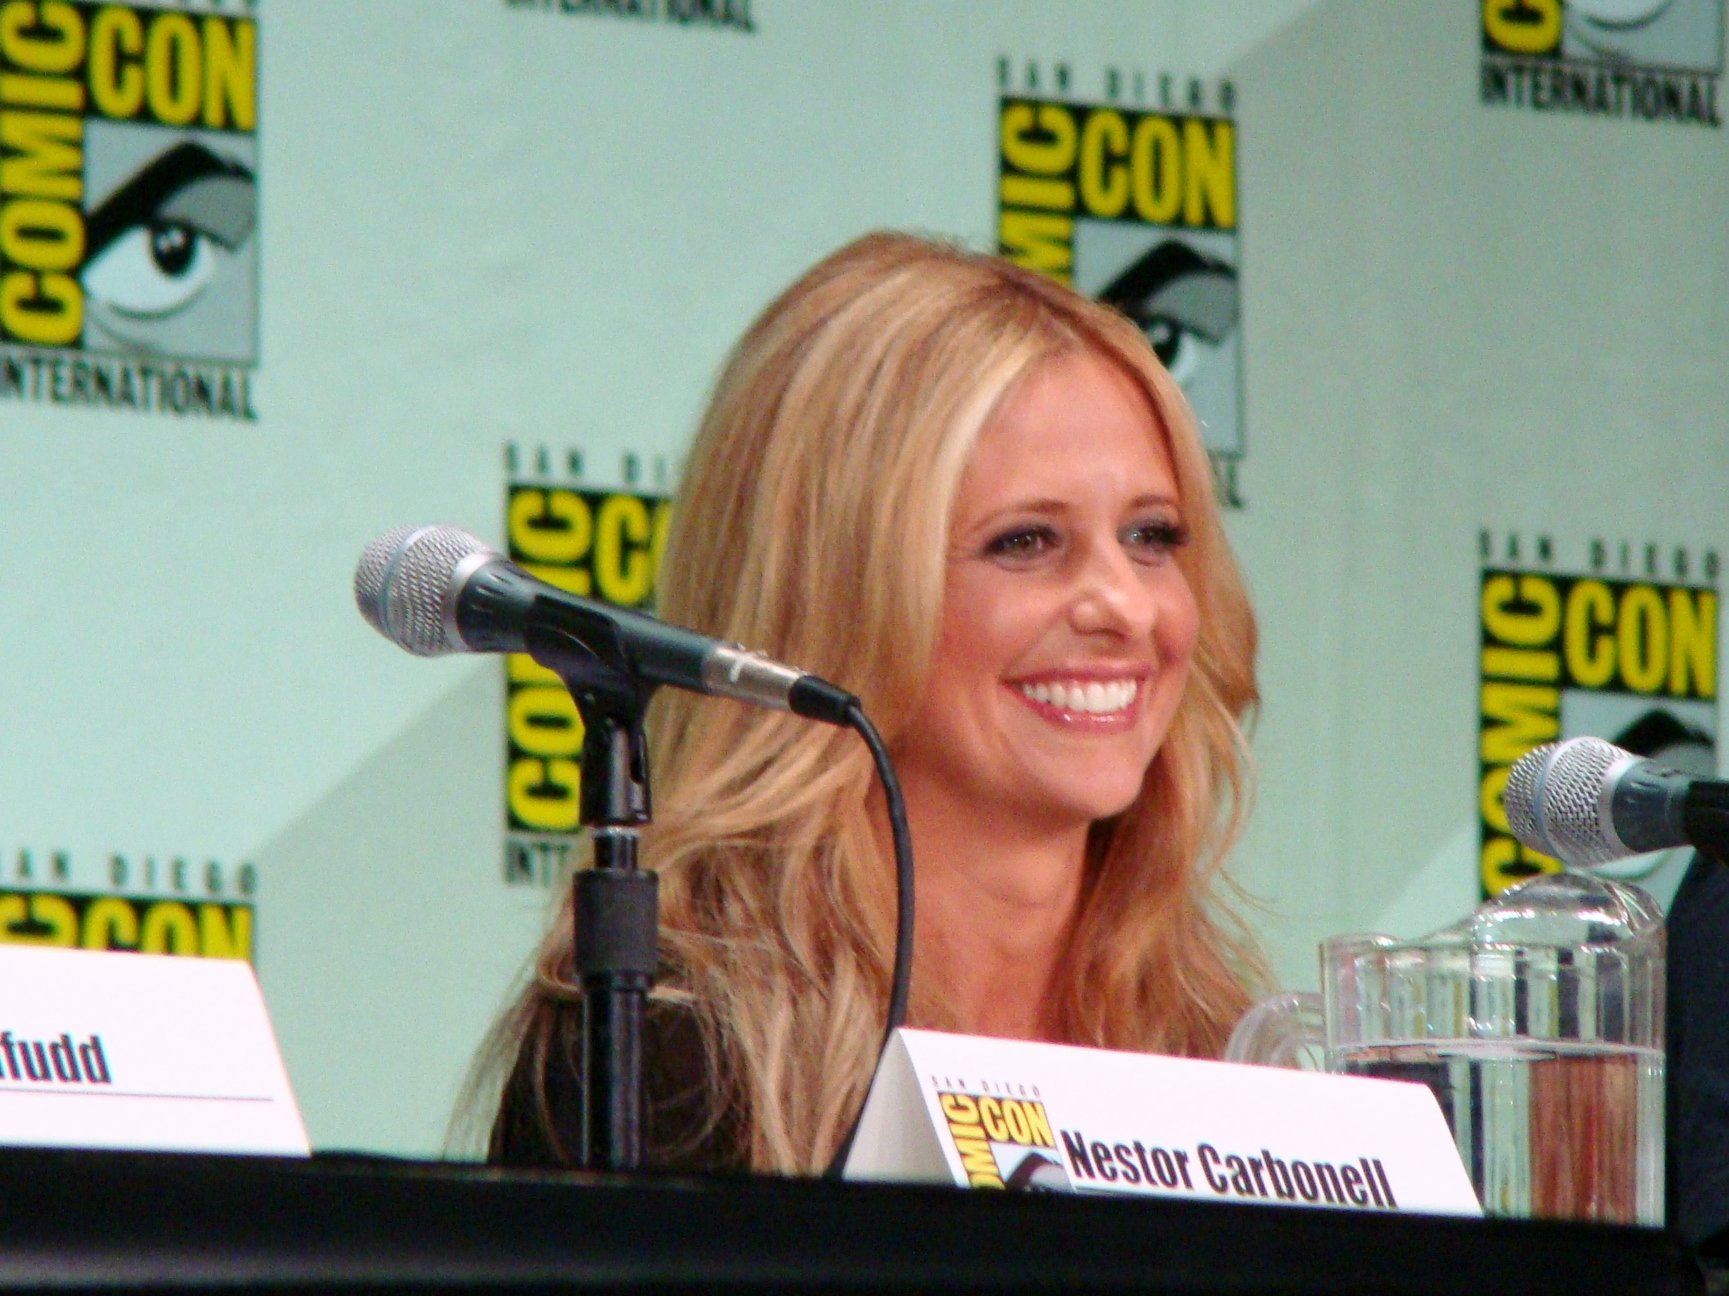 Sarah Michelle Gellar knows why Buffy was such a success / CC BY 2.0 / vagueonthehow / flickr